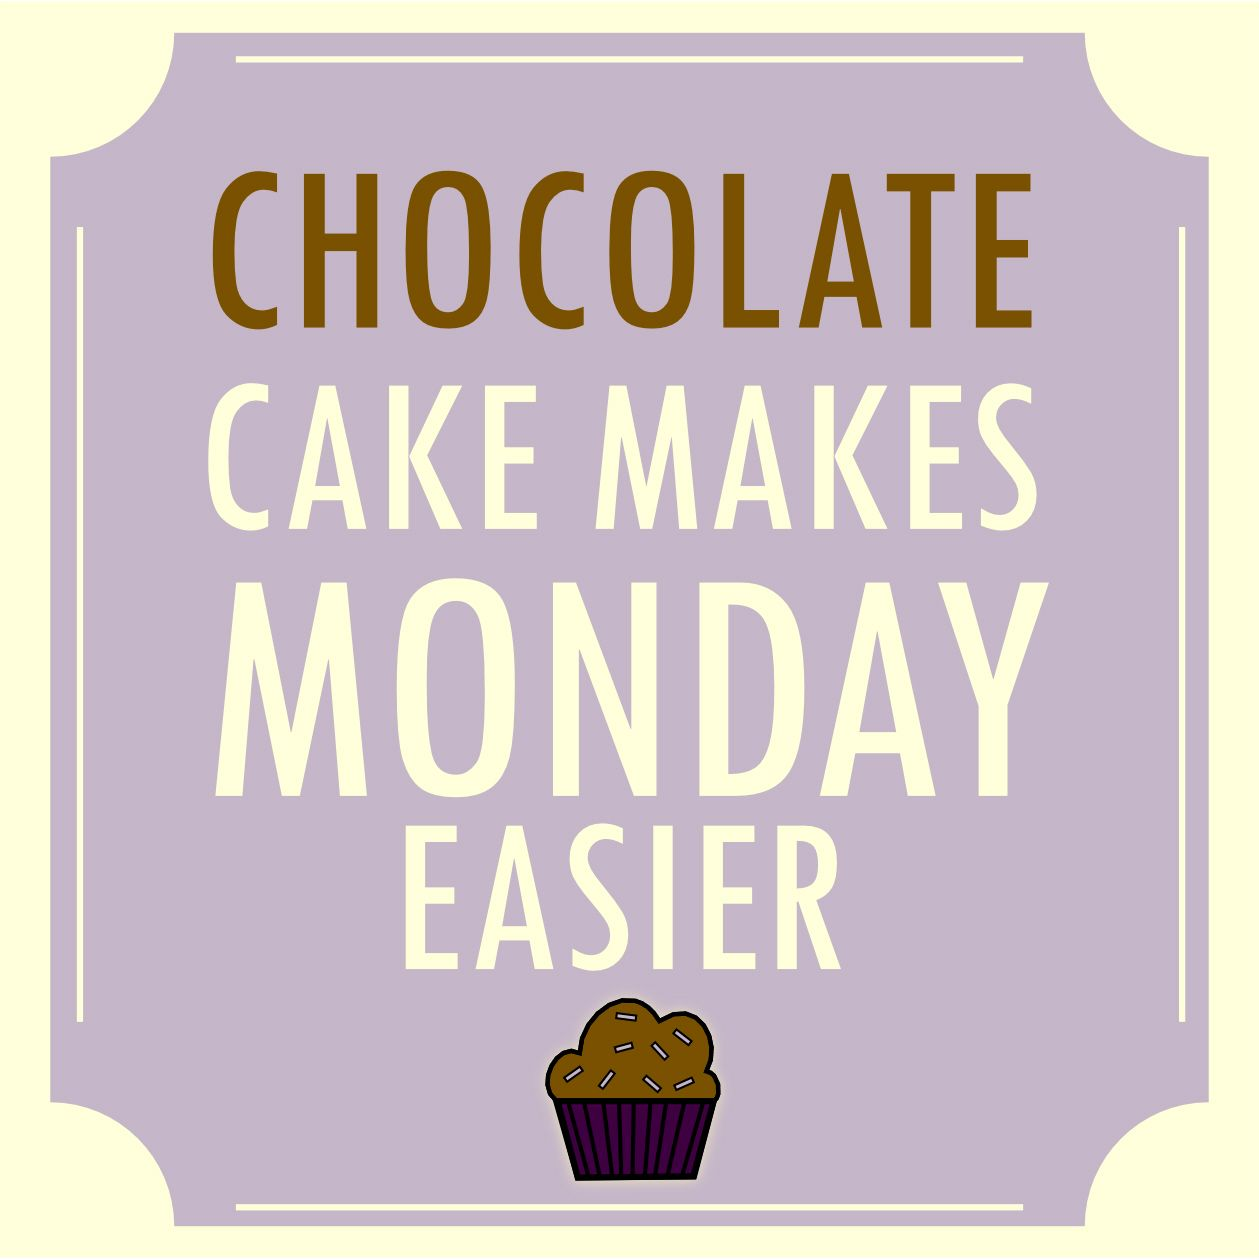 Quotes About Baking Cakes. QuotesGram